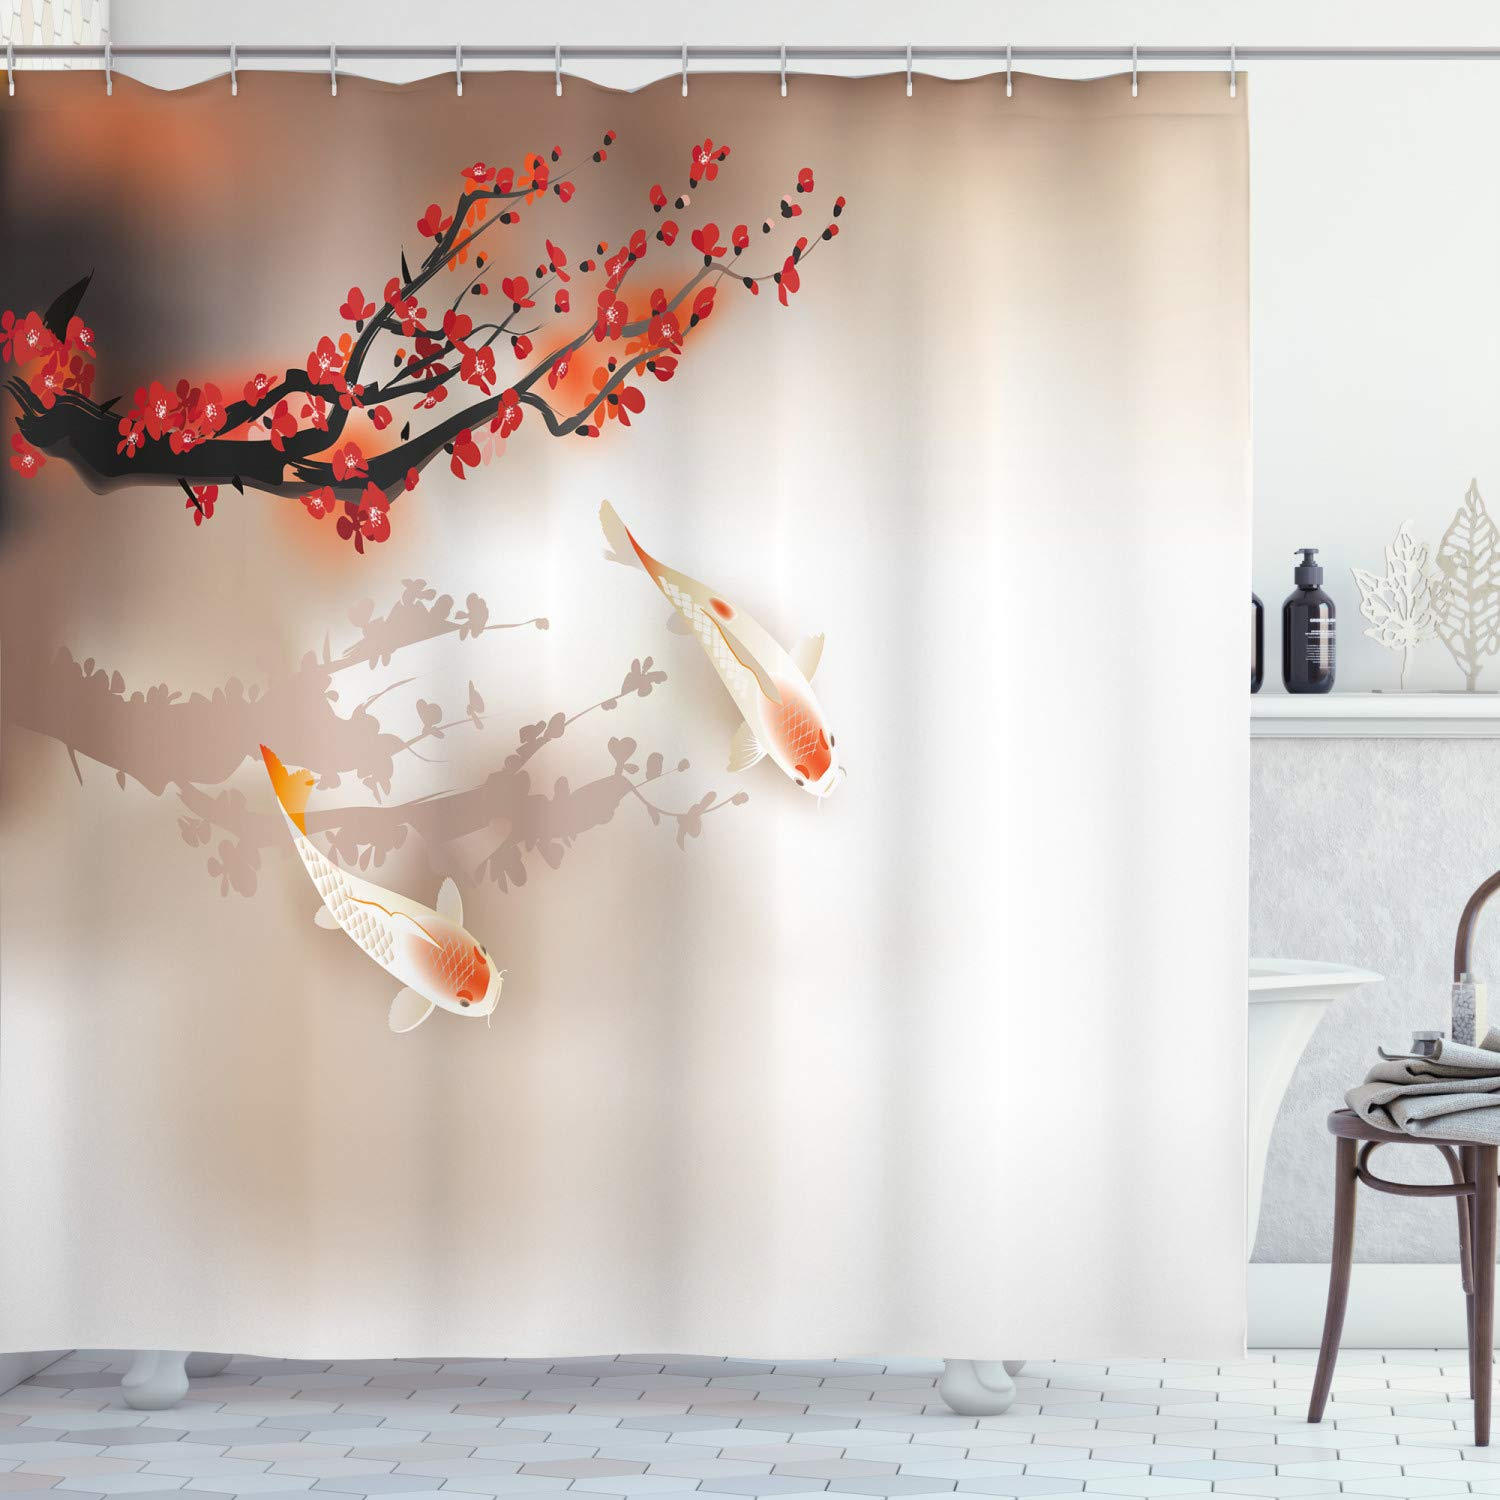 "Lunarable Koi Fish Shower Curtain, Sakura Branch and Leaves Animals in Small Body of Water Oriental Style, Cloth Fabric Bathroom Decor Set with Hooks, 75"" Long, Peach Black Red"